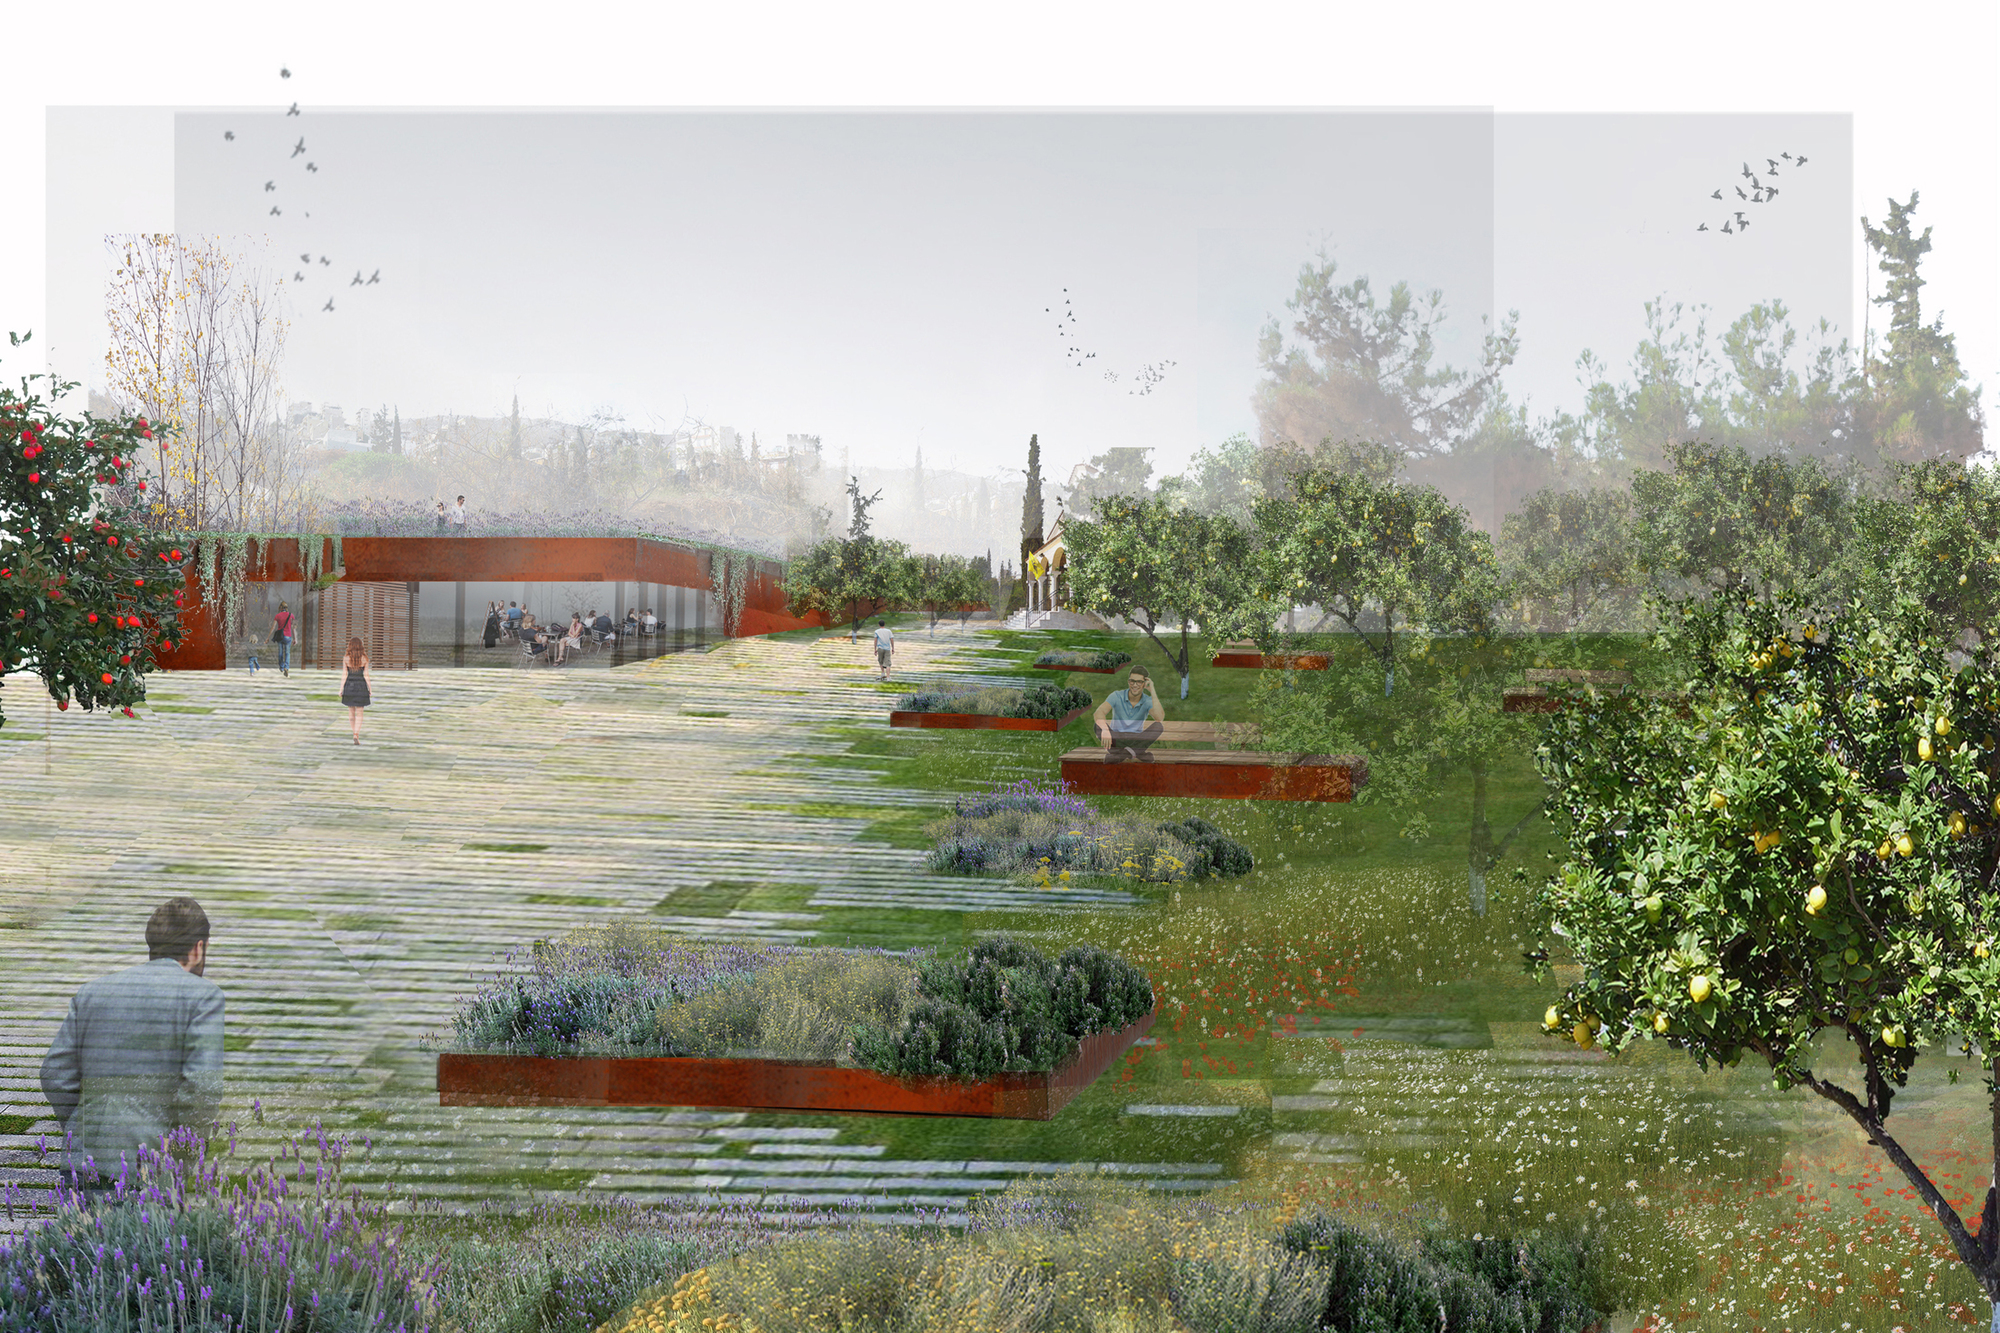 Gallery Of Topio7u2019s Revitalisation Of Former Cemetery Merges Urban Park And City In Athens - 3